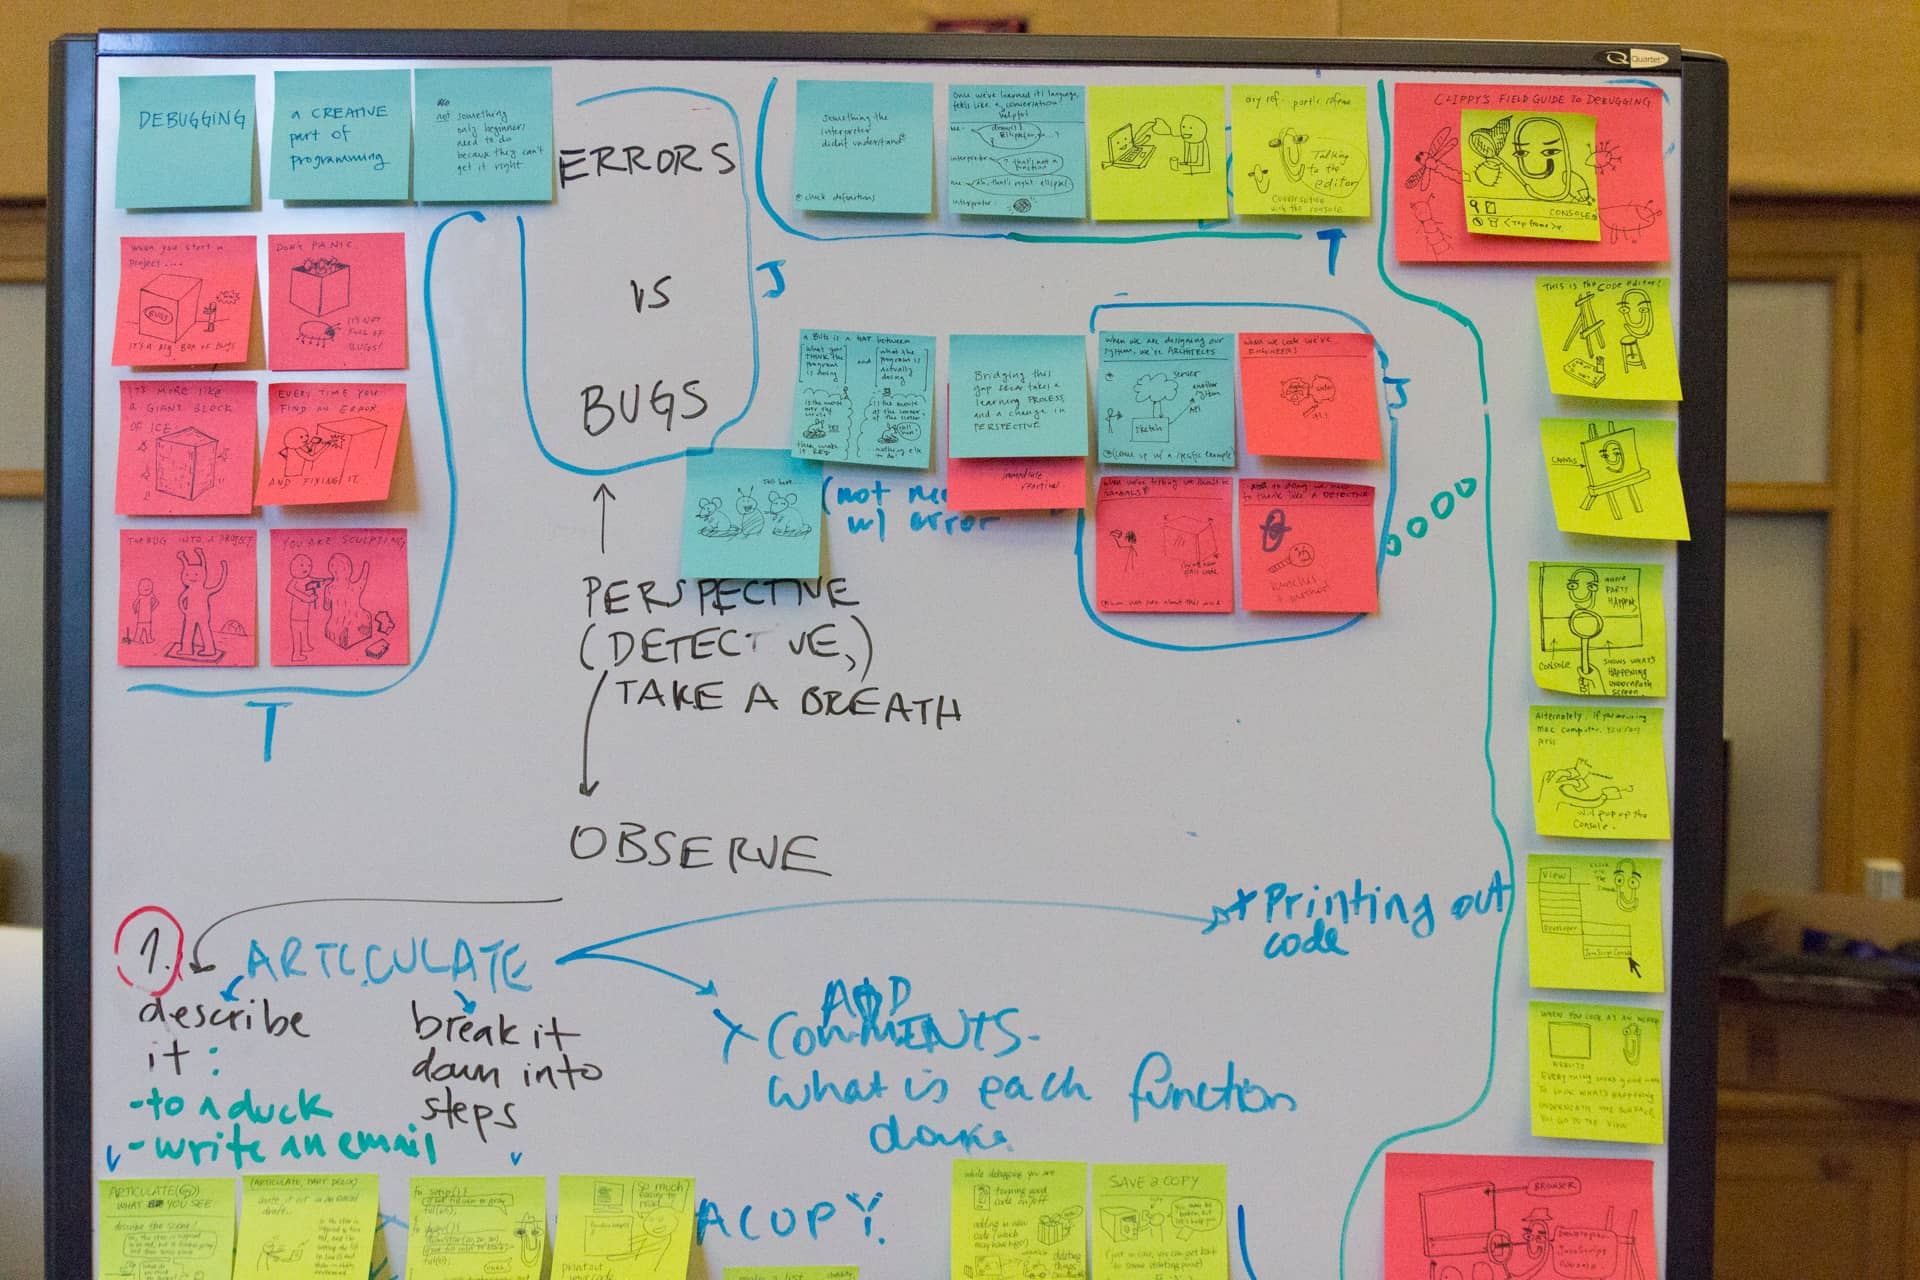 Whiteboard with different colored sticky and written notes about programming""